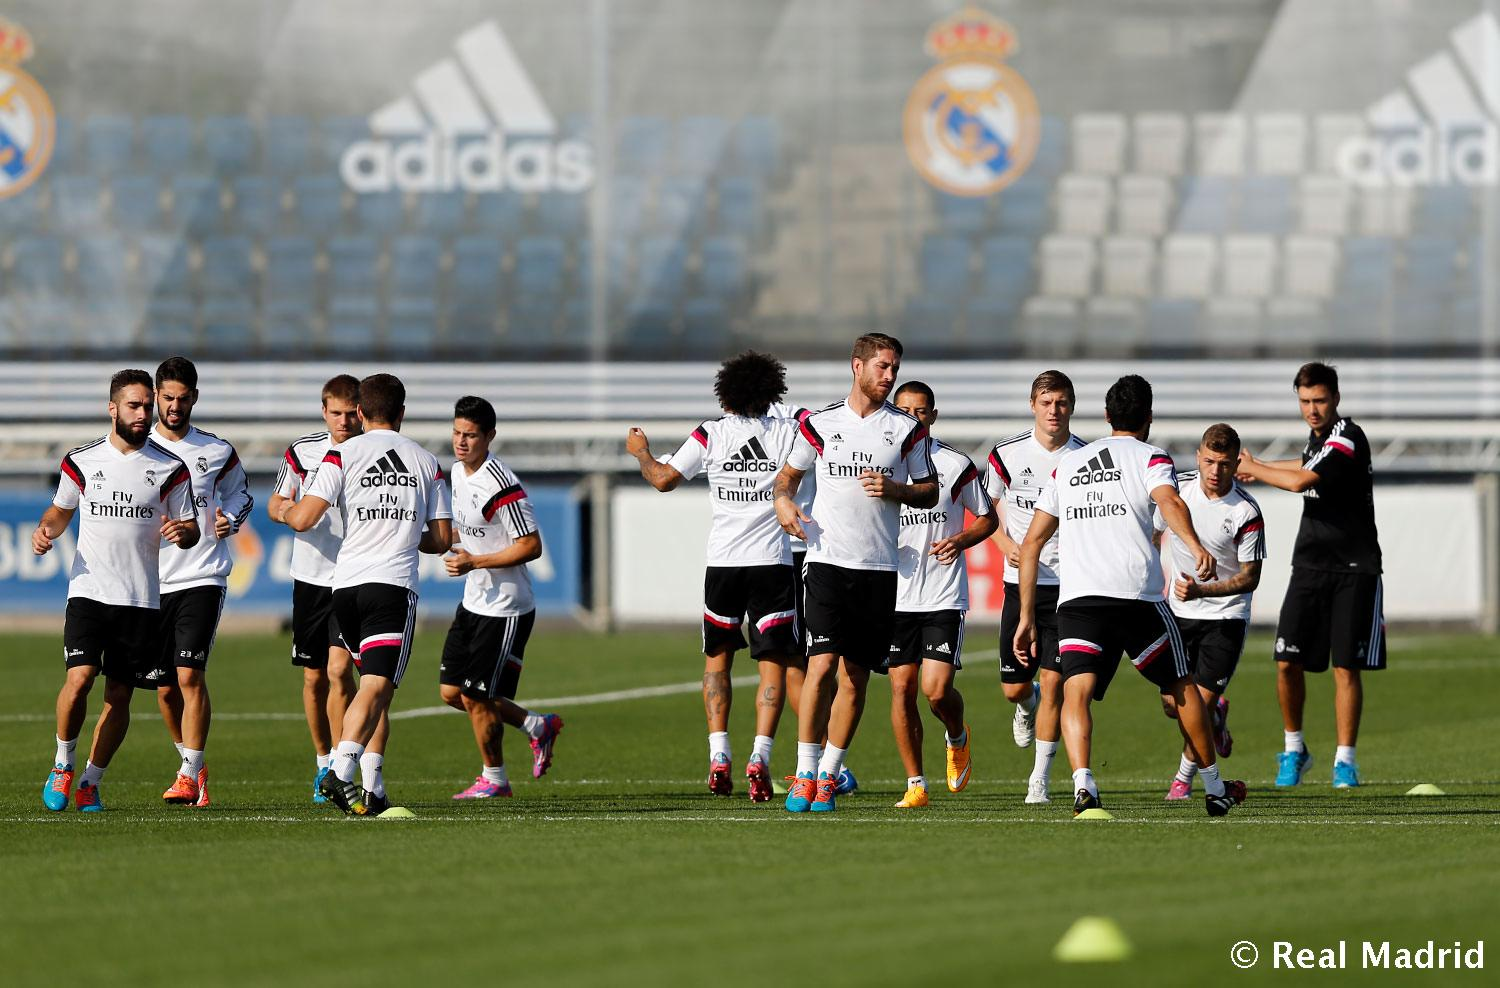 Real Madrid - Entrenamiento del Real Madrid - 03-10-2014